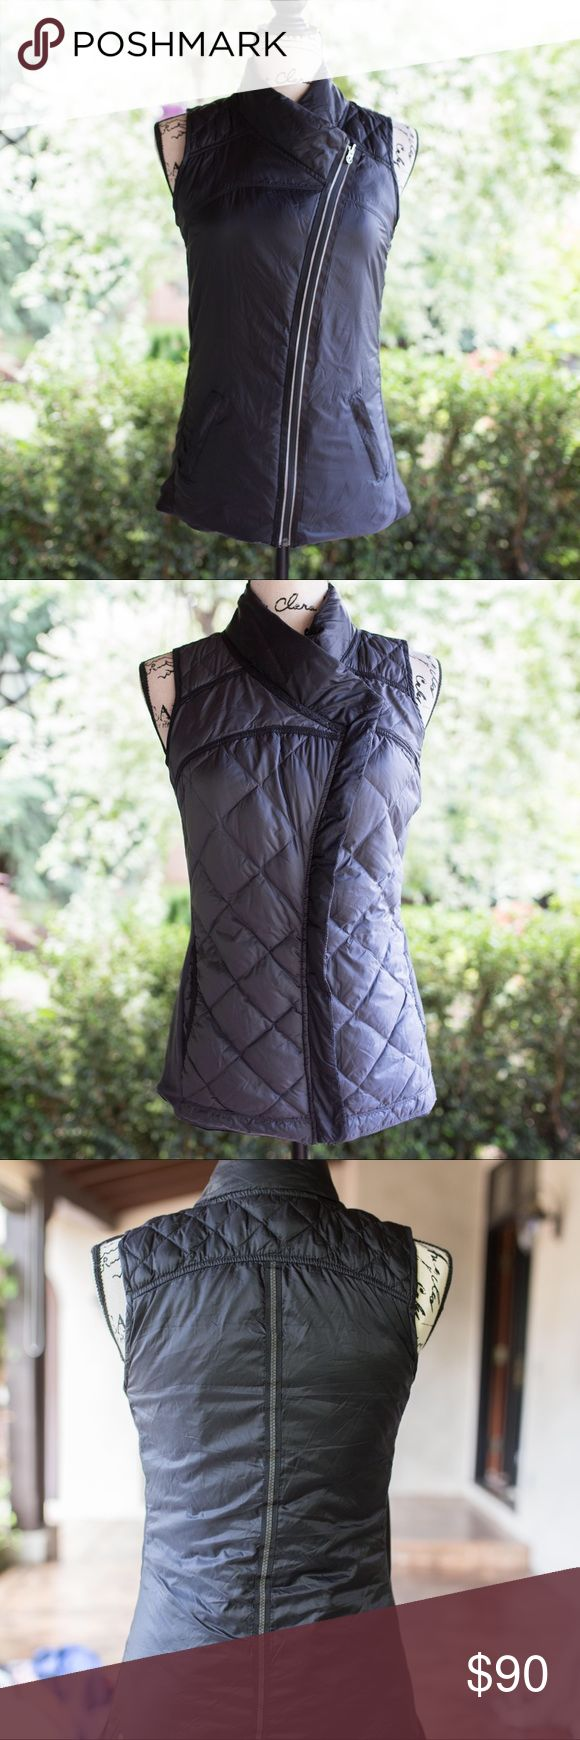 Reversible Lululemon Vest Practically new. Only been worn a few times. Super flattering on. In excellent condition. It's reversible! lululemon athletica Jackets & Coats Vests